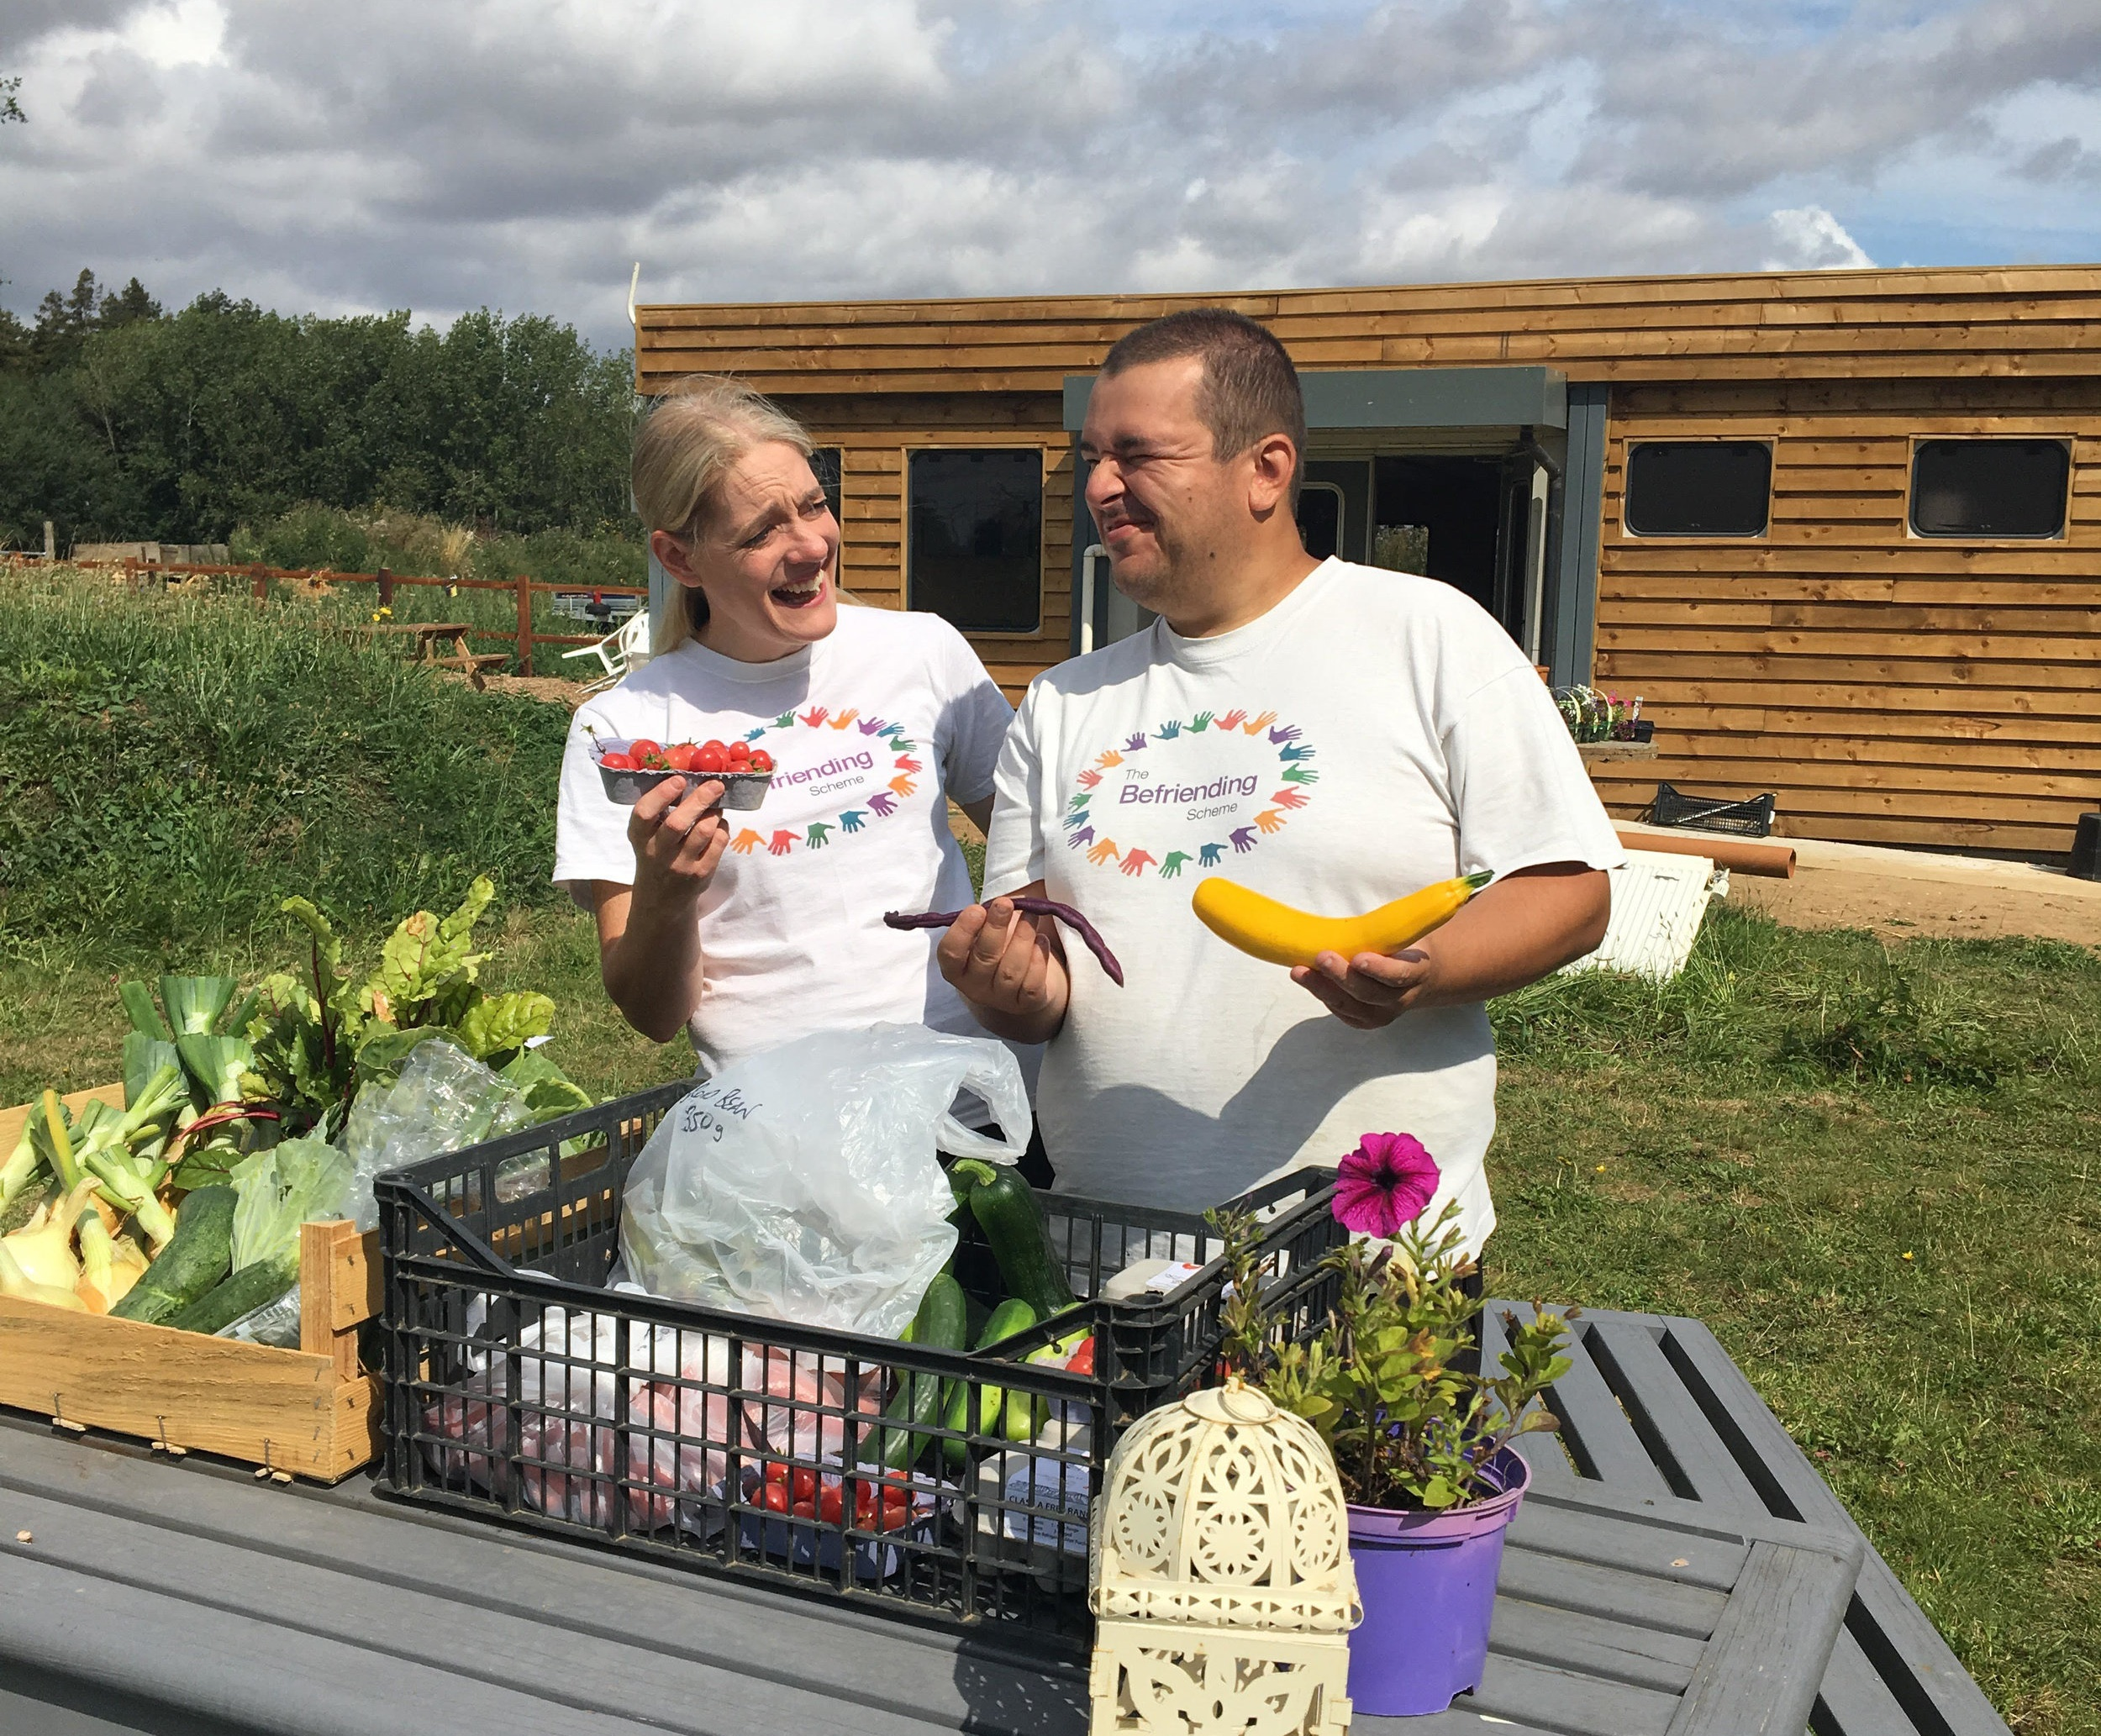 Community Farm Leader, Ashley displaying the fruit and veg harvested from the farm with long-term-volunteer, Vincent.